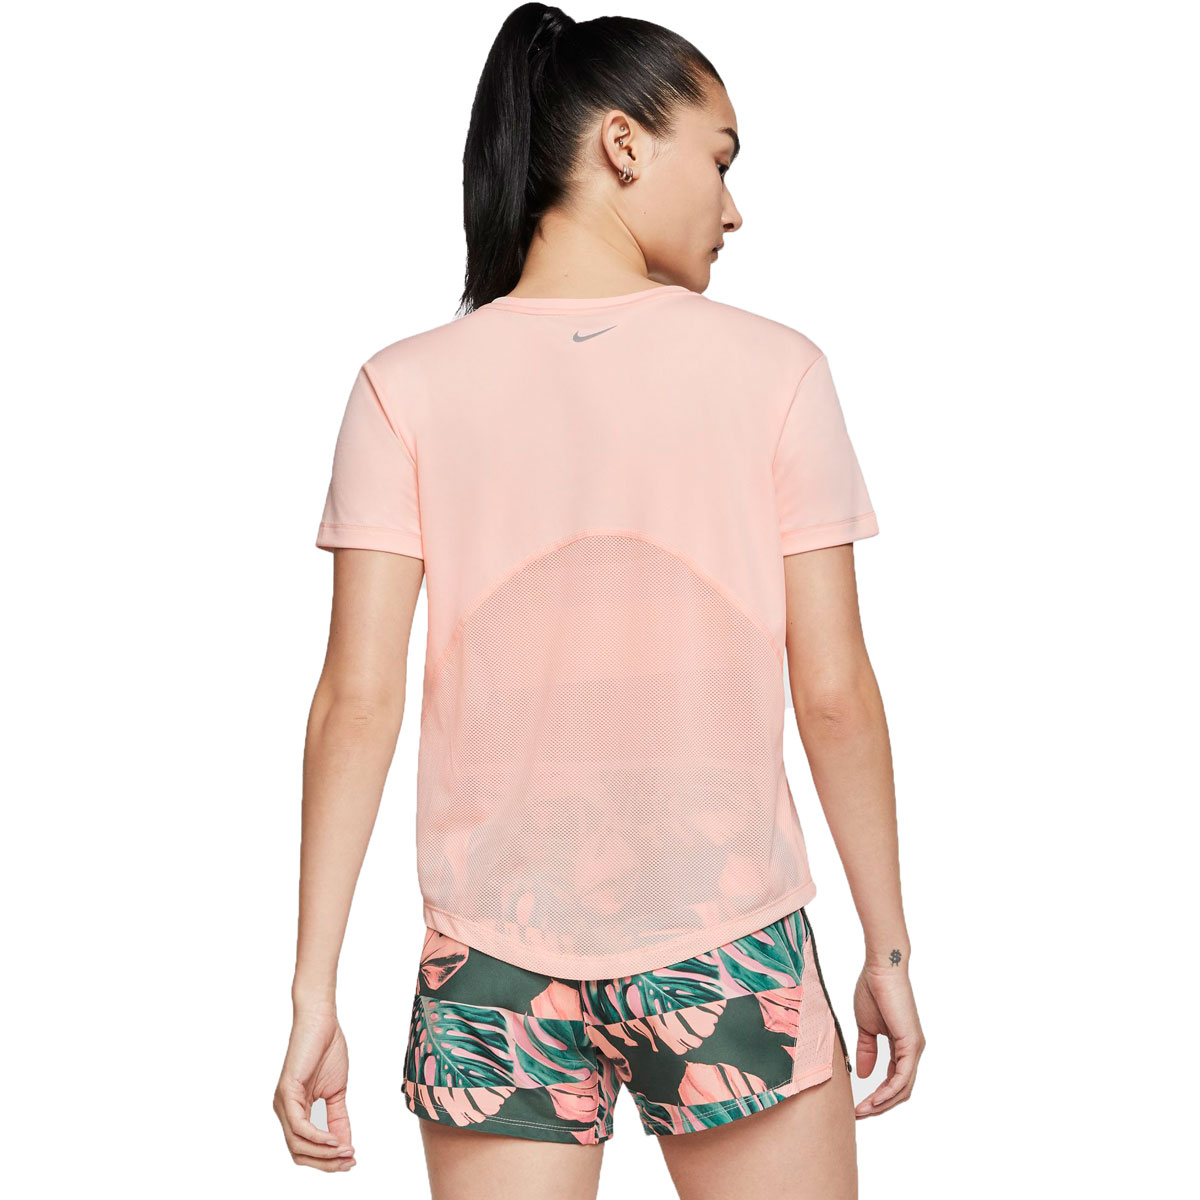 Women's Nike Miler Short-Sleeve Running Top - Color: Washed Coral/Reflective Silver - Size: XS, Washed Coral/Reflective Silver, large, image 2